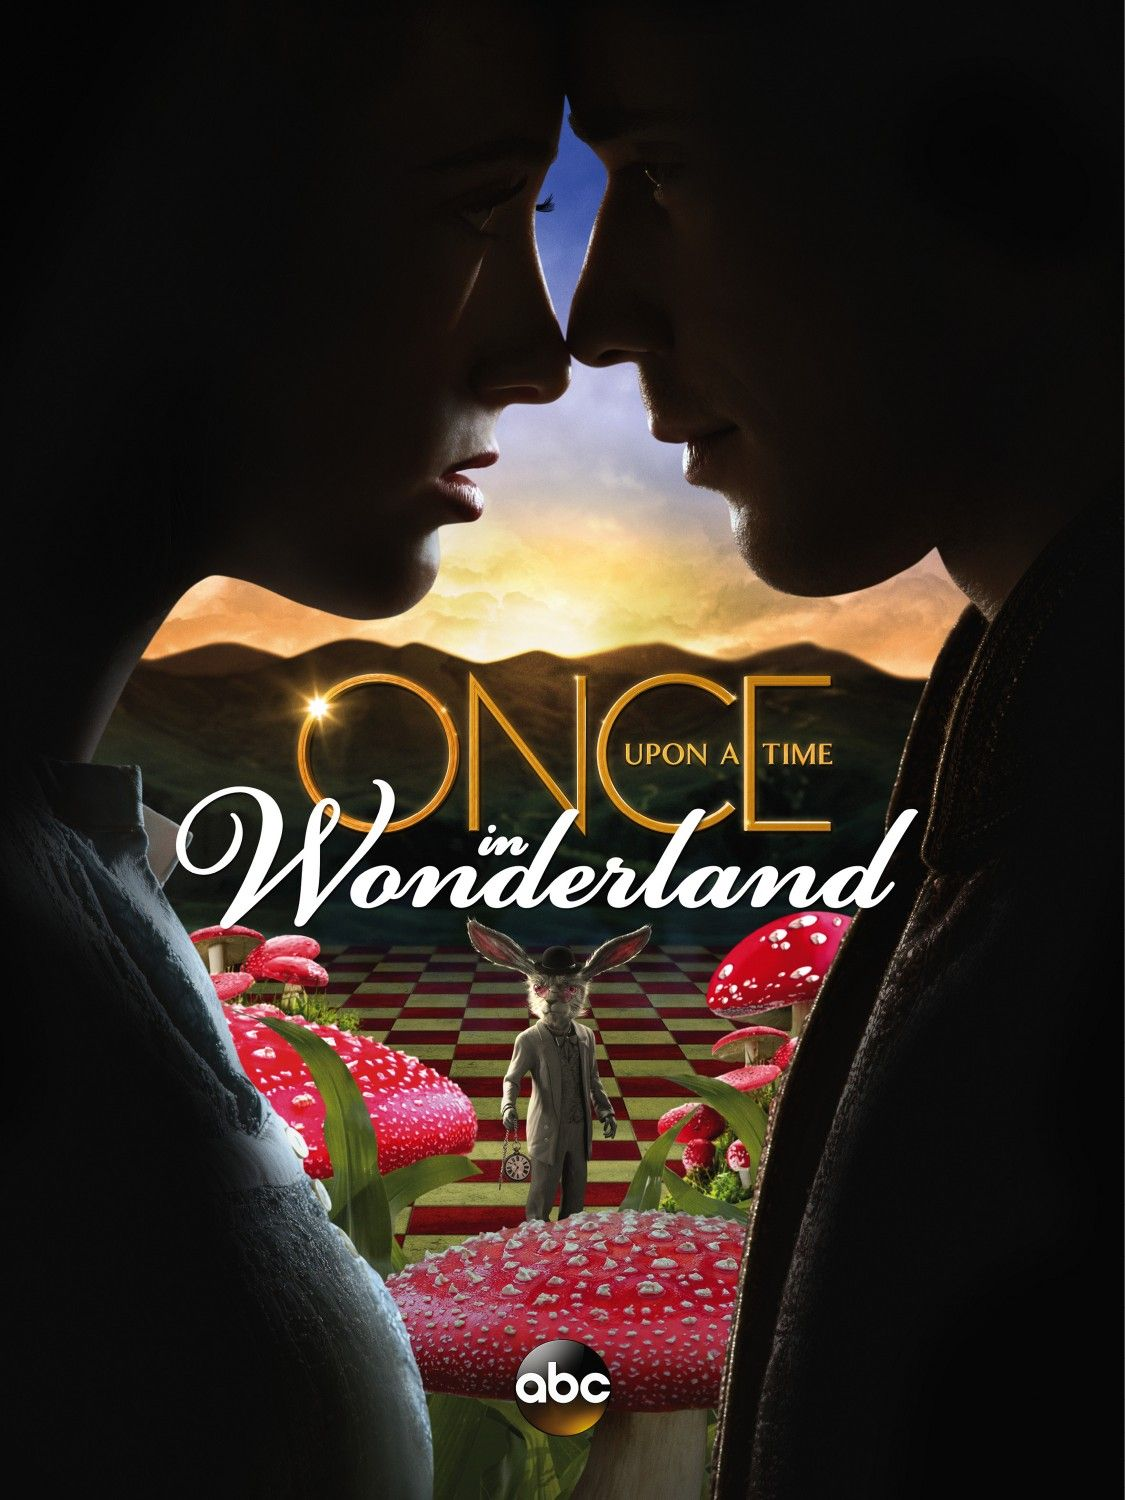 Once Upon a Time in Wonderland (ABC). I have to put the low ratings for this show down to a poor programming decision. I think the leads on this show are infinitely better, the acting is less stilted, the plotting is cleaner and more sensible, and the themes are way less troublesome both in terms of women and family.